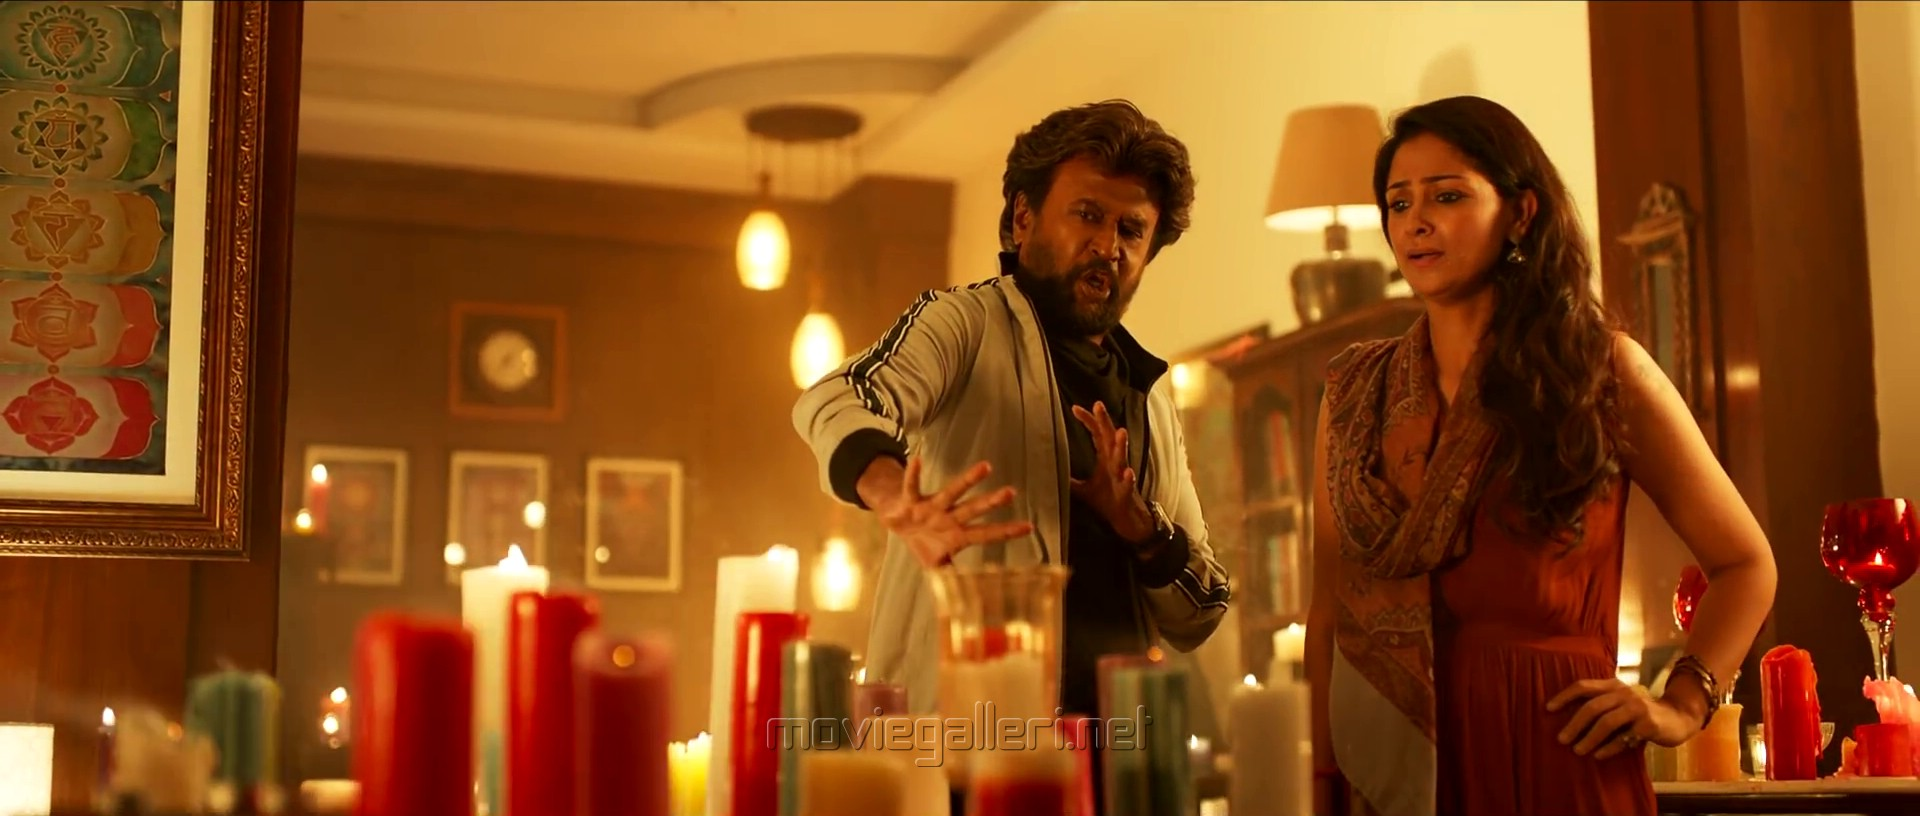 Rajinikanth, Simran in Petta Movie Images HD